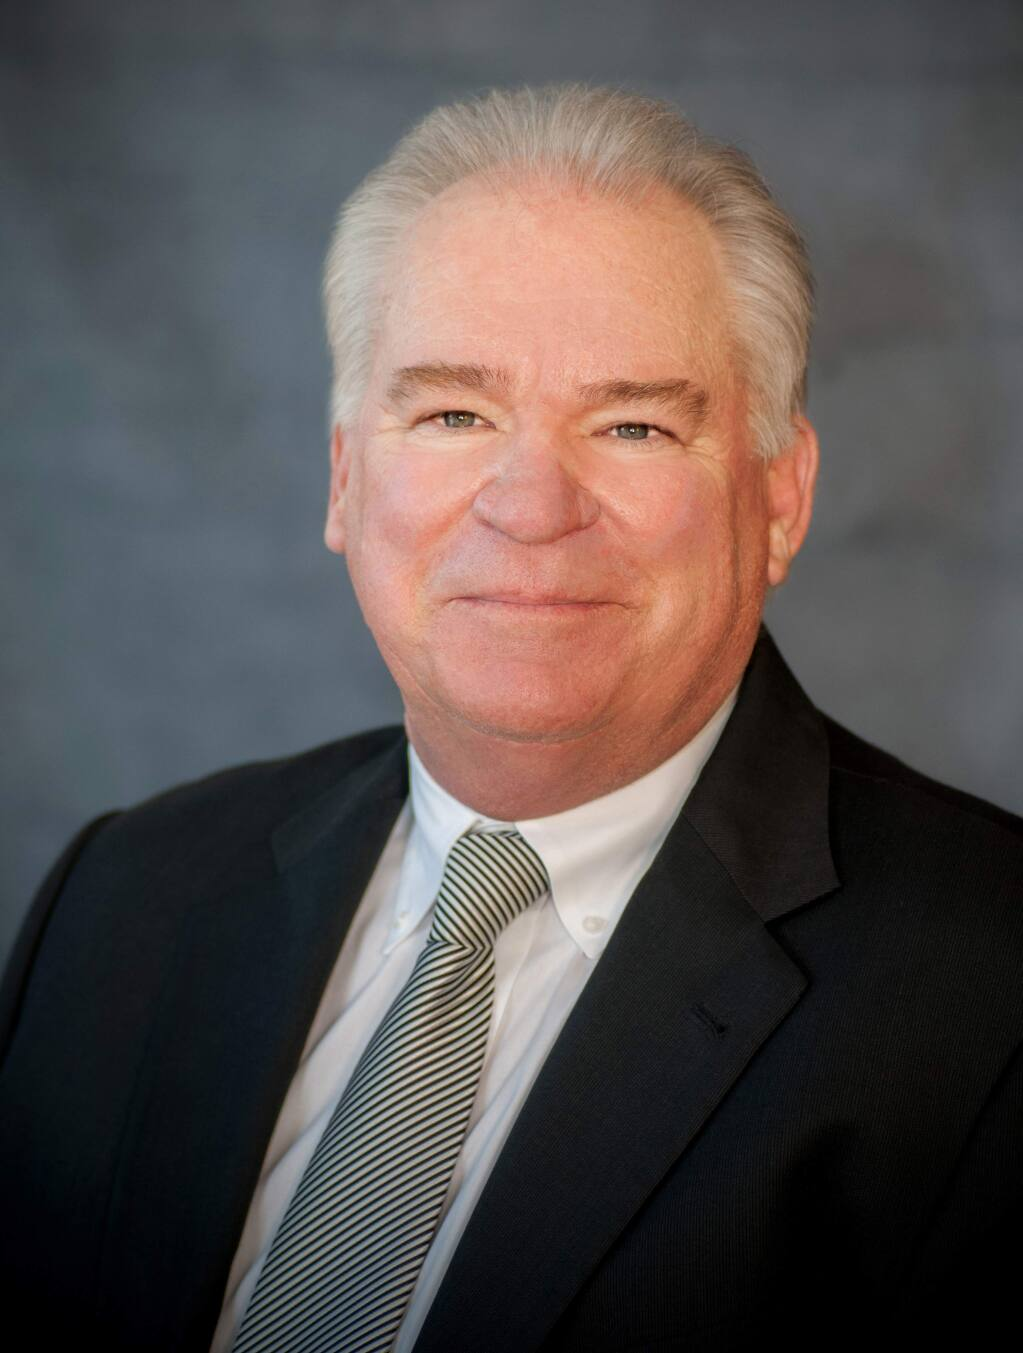 Joe O'Hehir, CEO of the nonprofit Whistlestop based in San Rafael, plans to retire in February 2021. (courtesy photo)